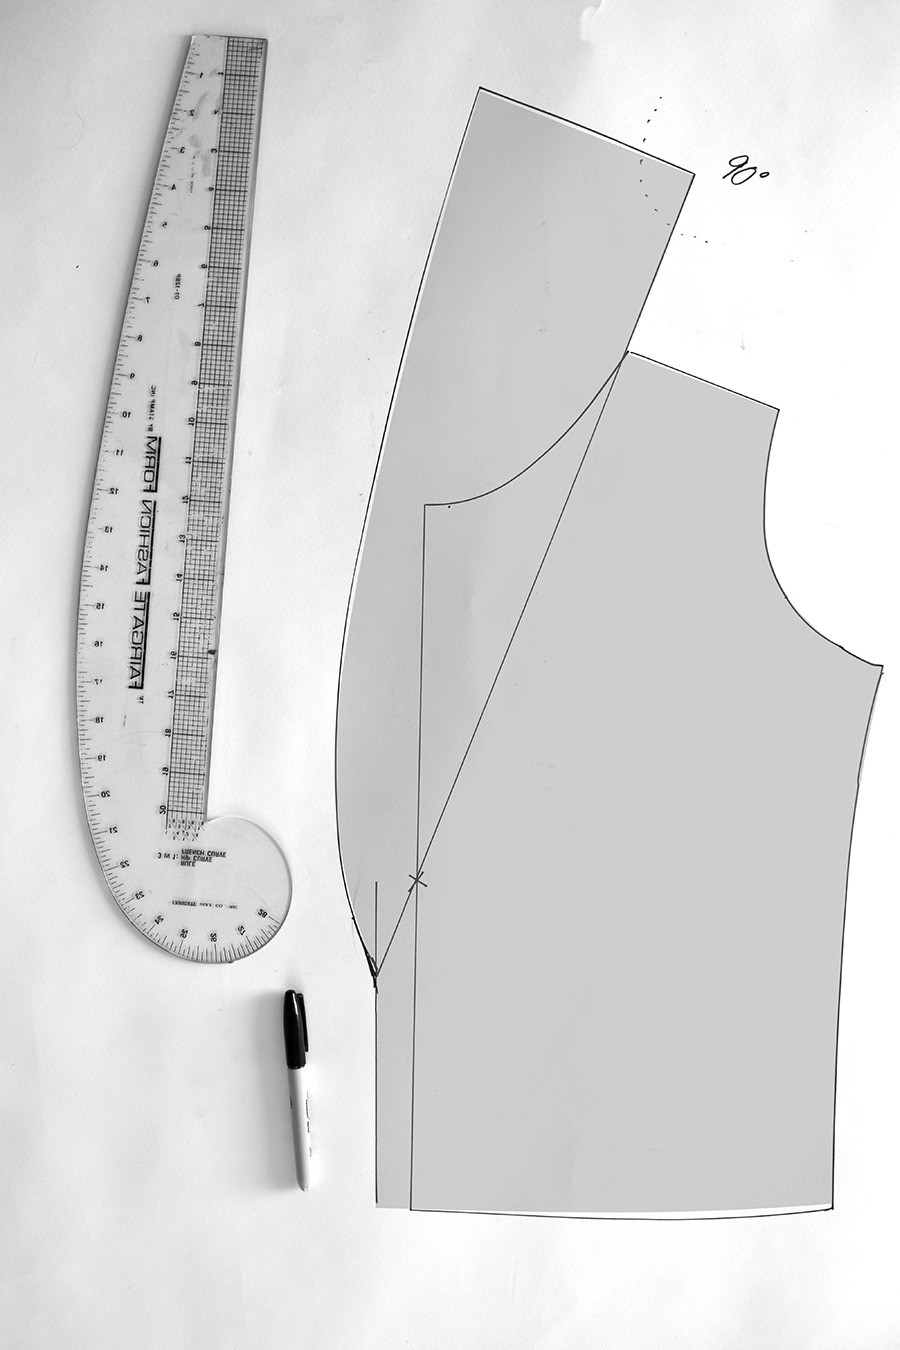 shawl collar pattern piece